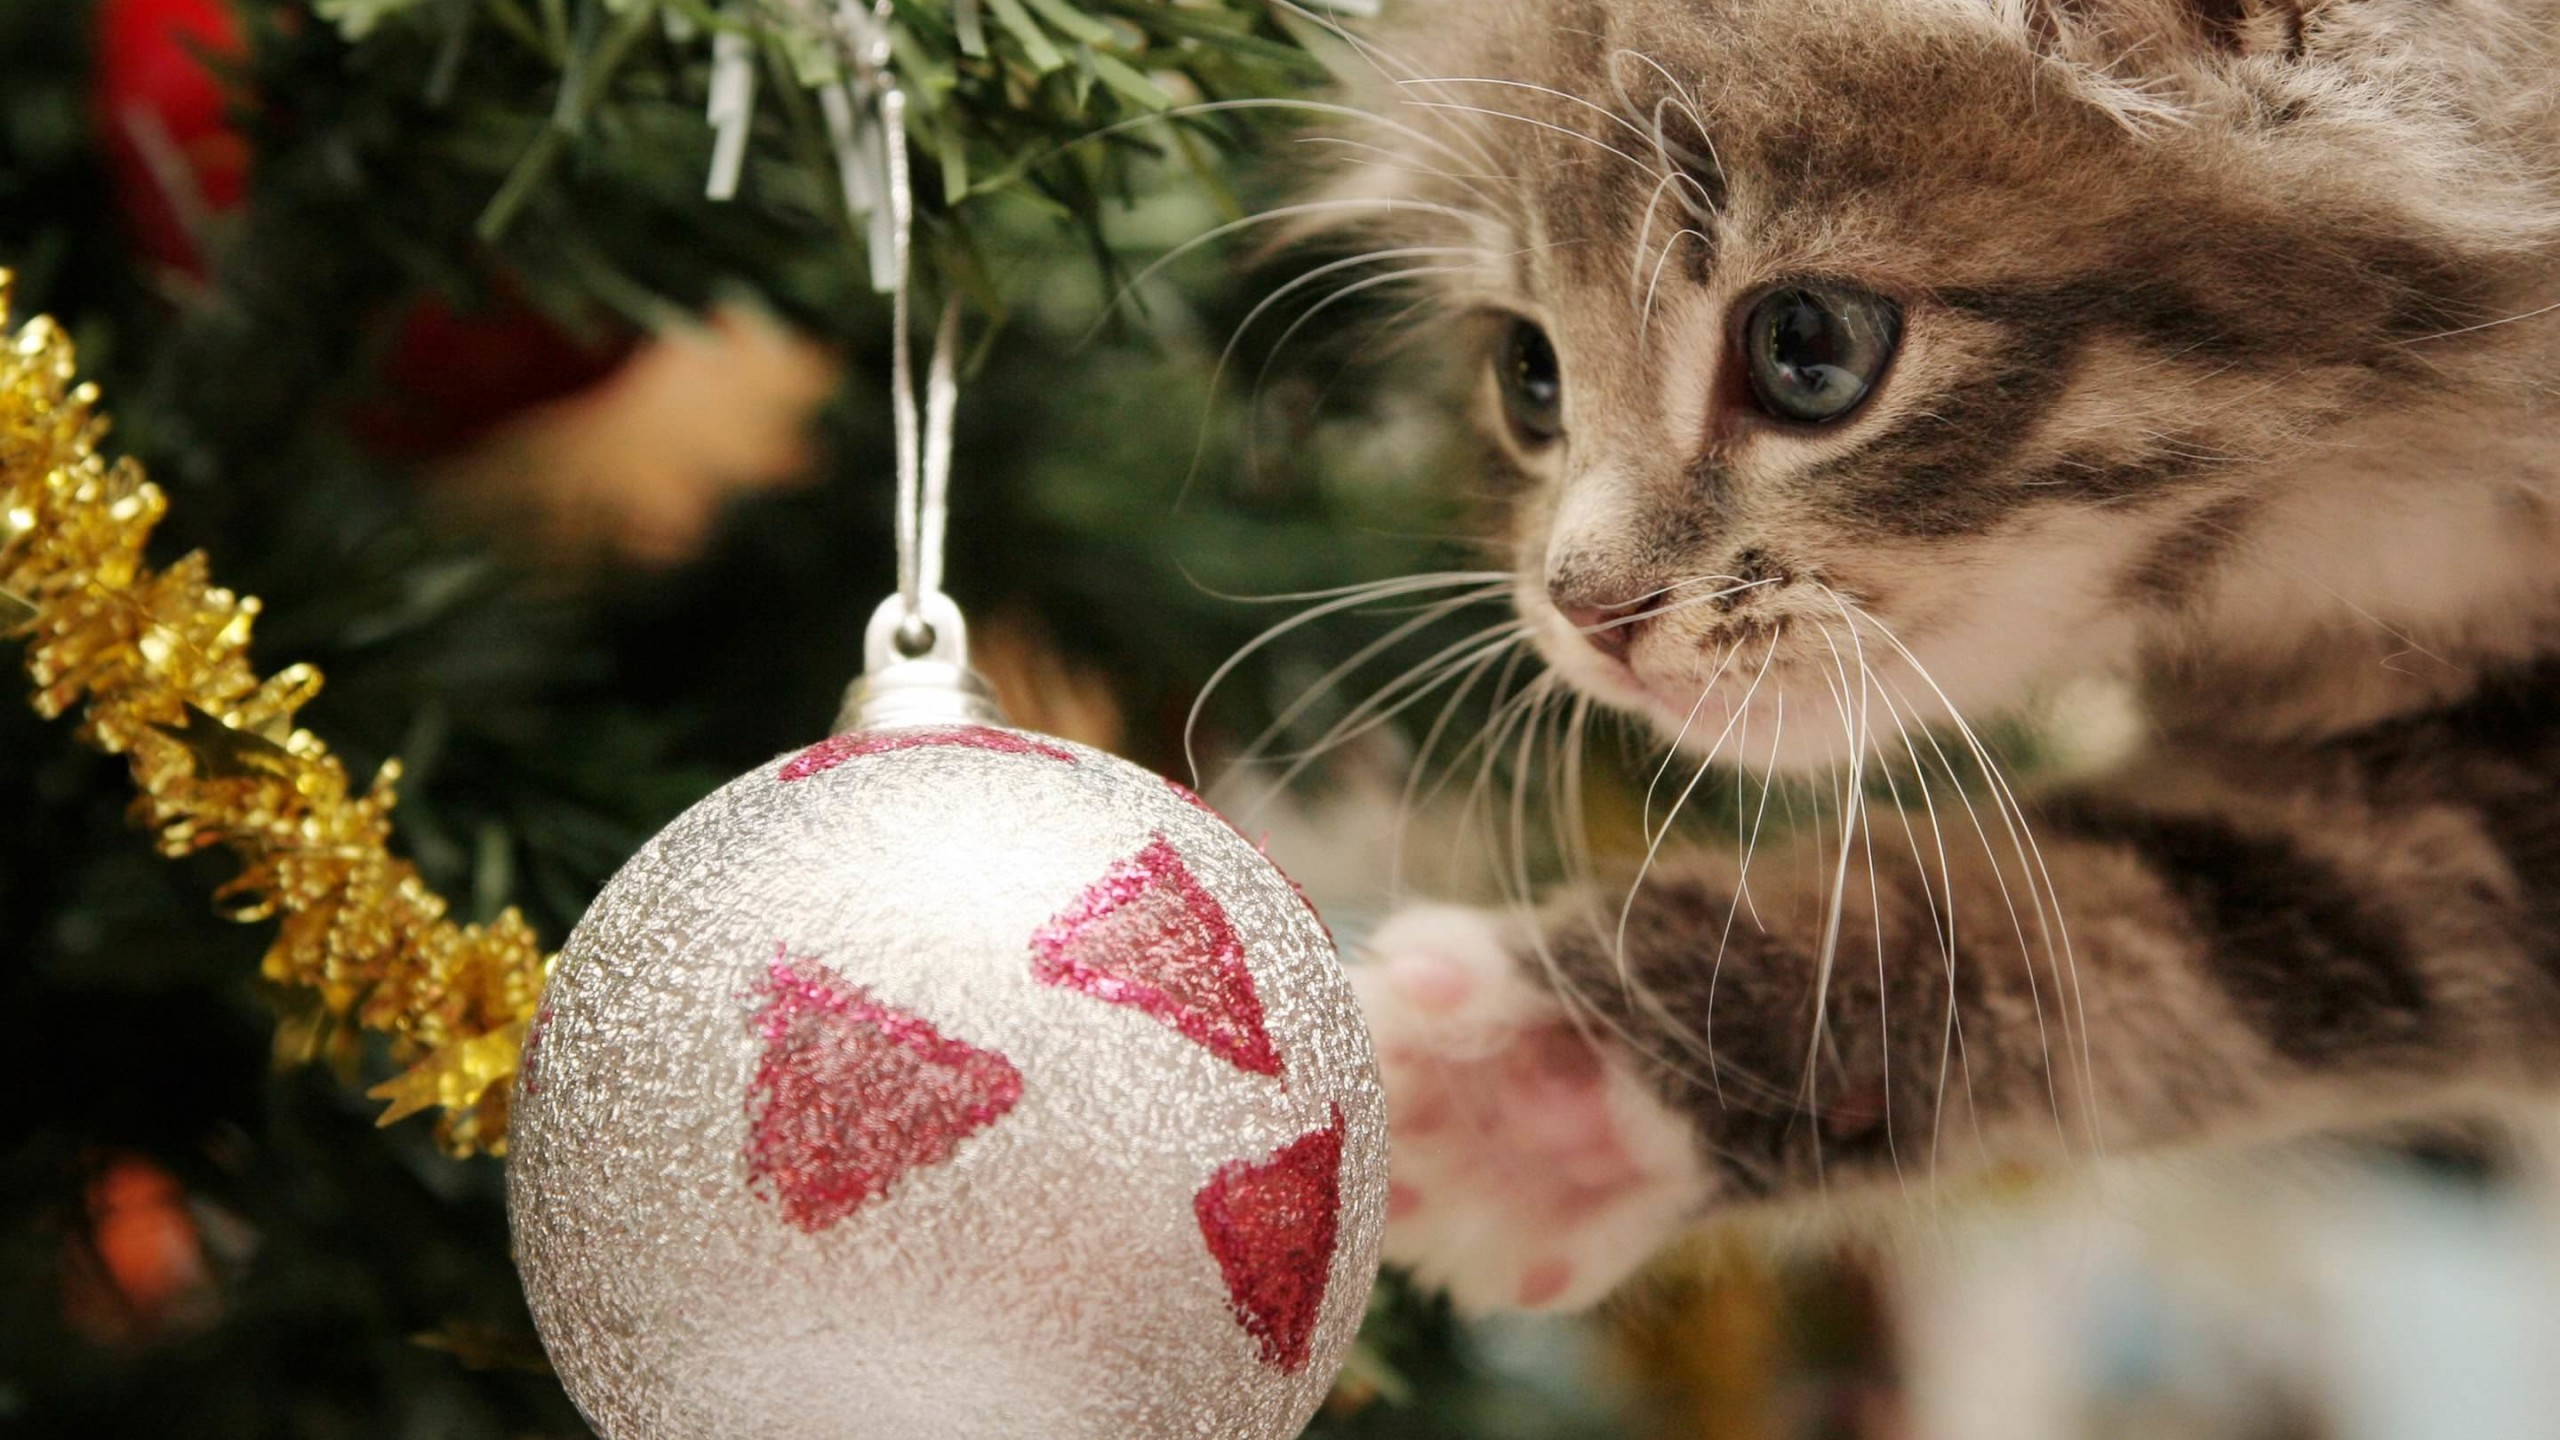 Kitten Playing With Christmas Ornaments Wallpaper for Desktop 2560x1440